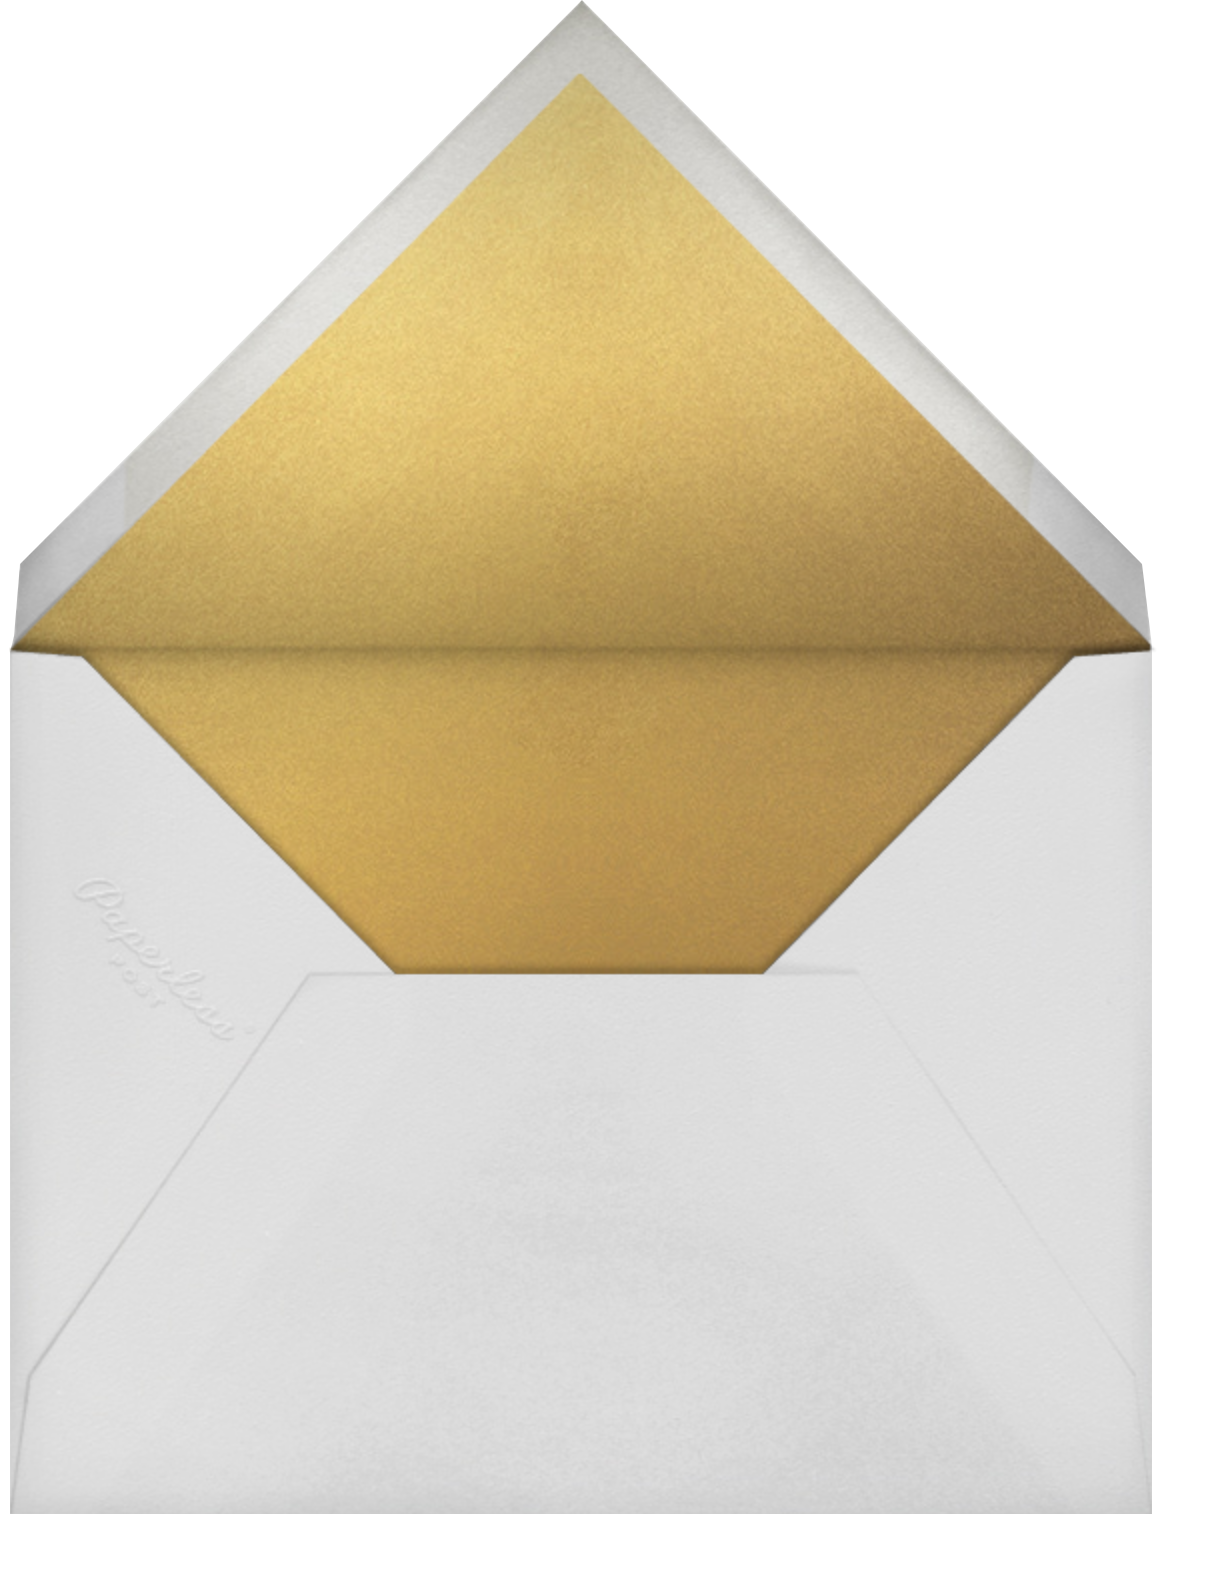 Thirlmere (Invitation) - Paperless Post - Virtual wedding - envelope back